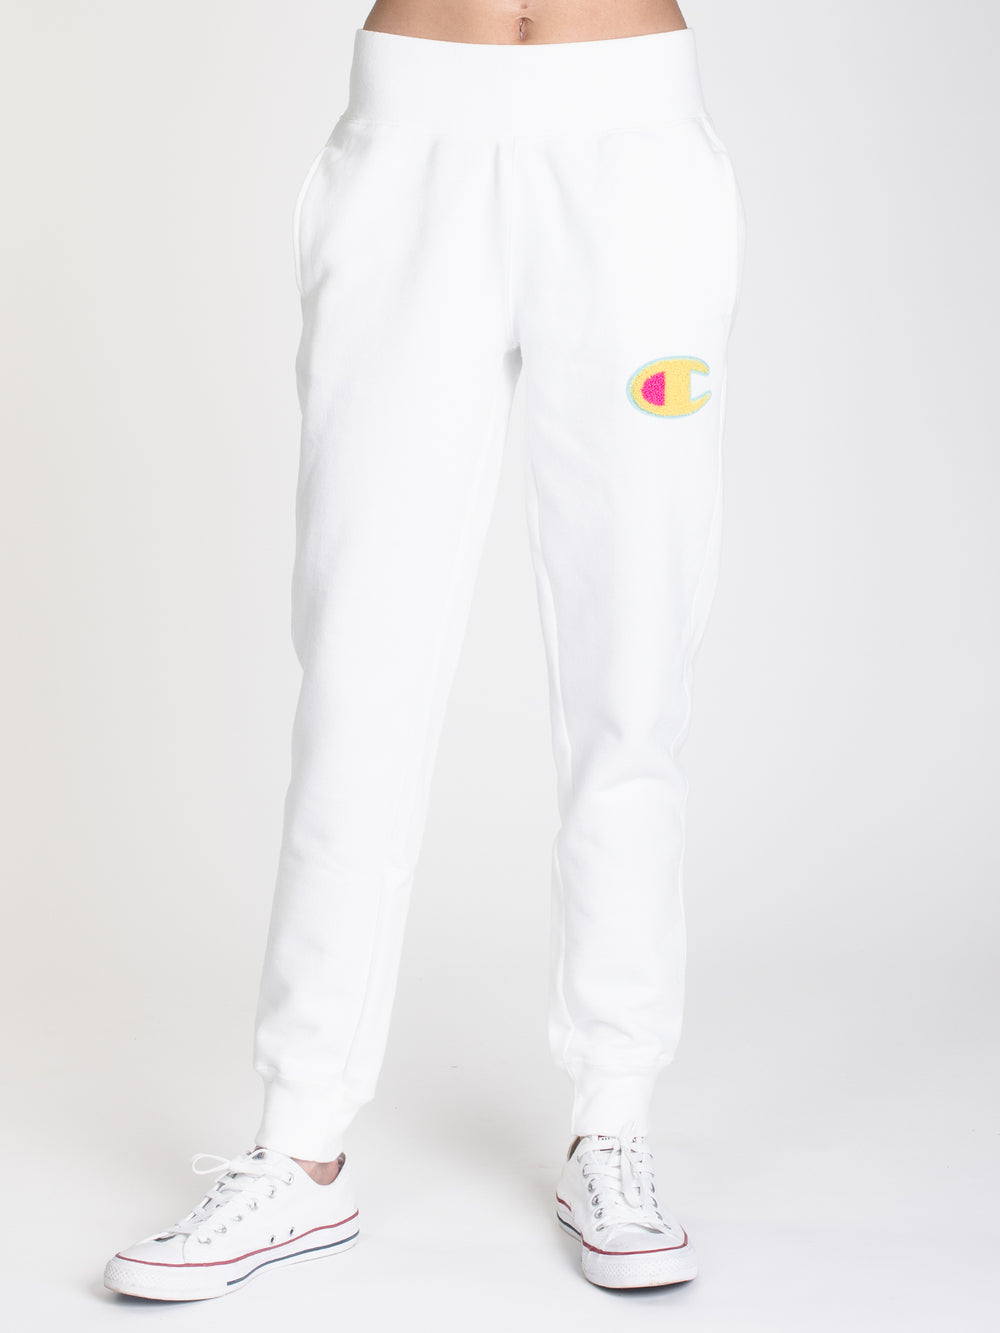 WOMENS REV WEAVE CHN JOGGER - WHITE